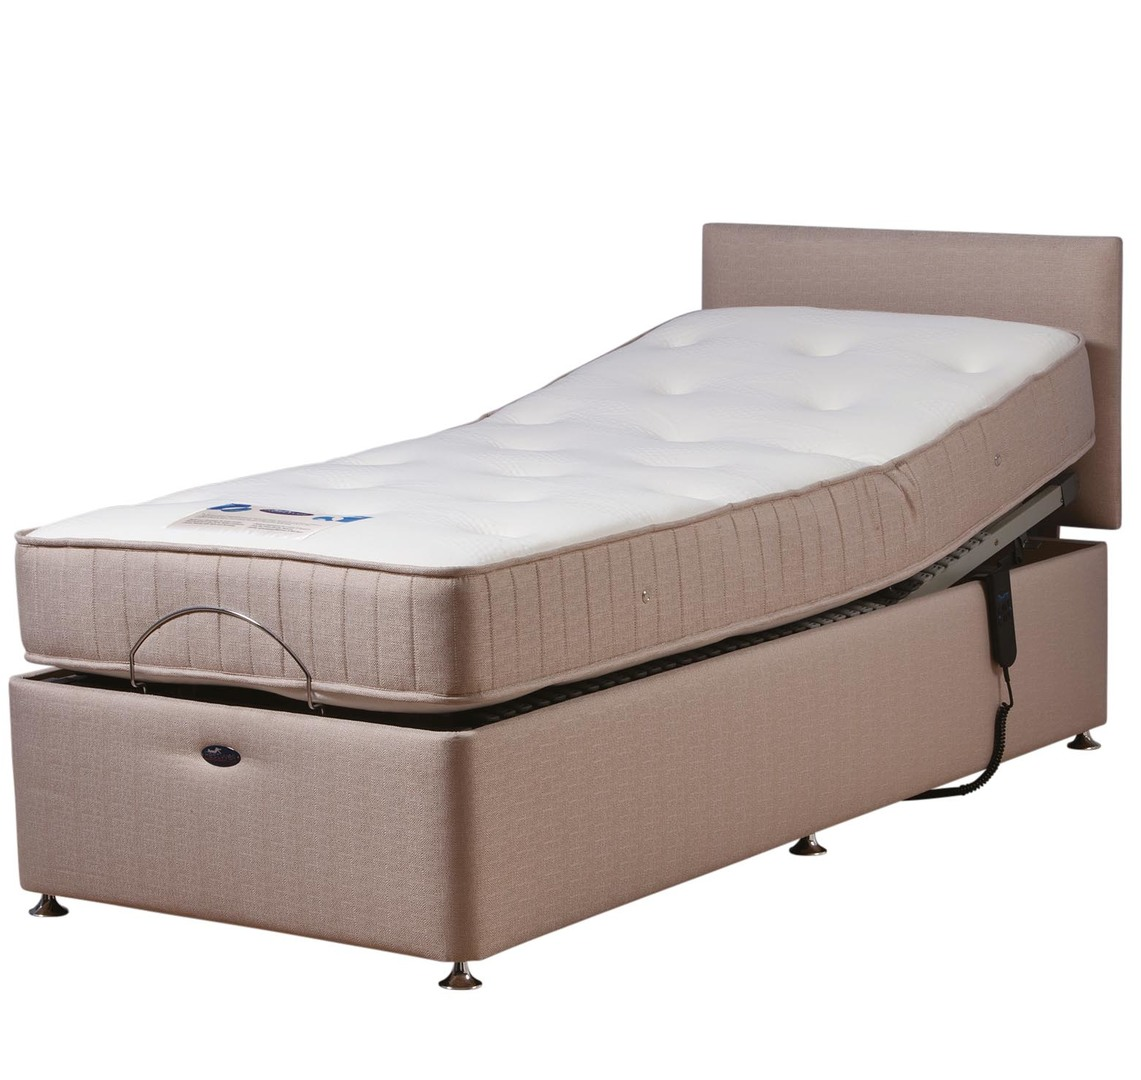 Adjustable Beds Electric The Richmond